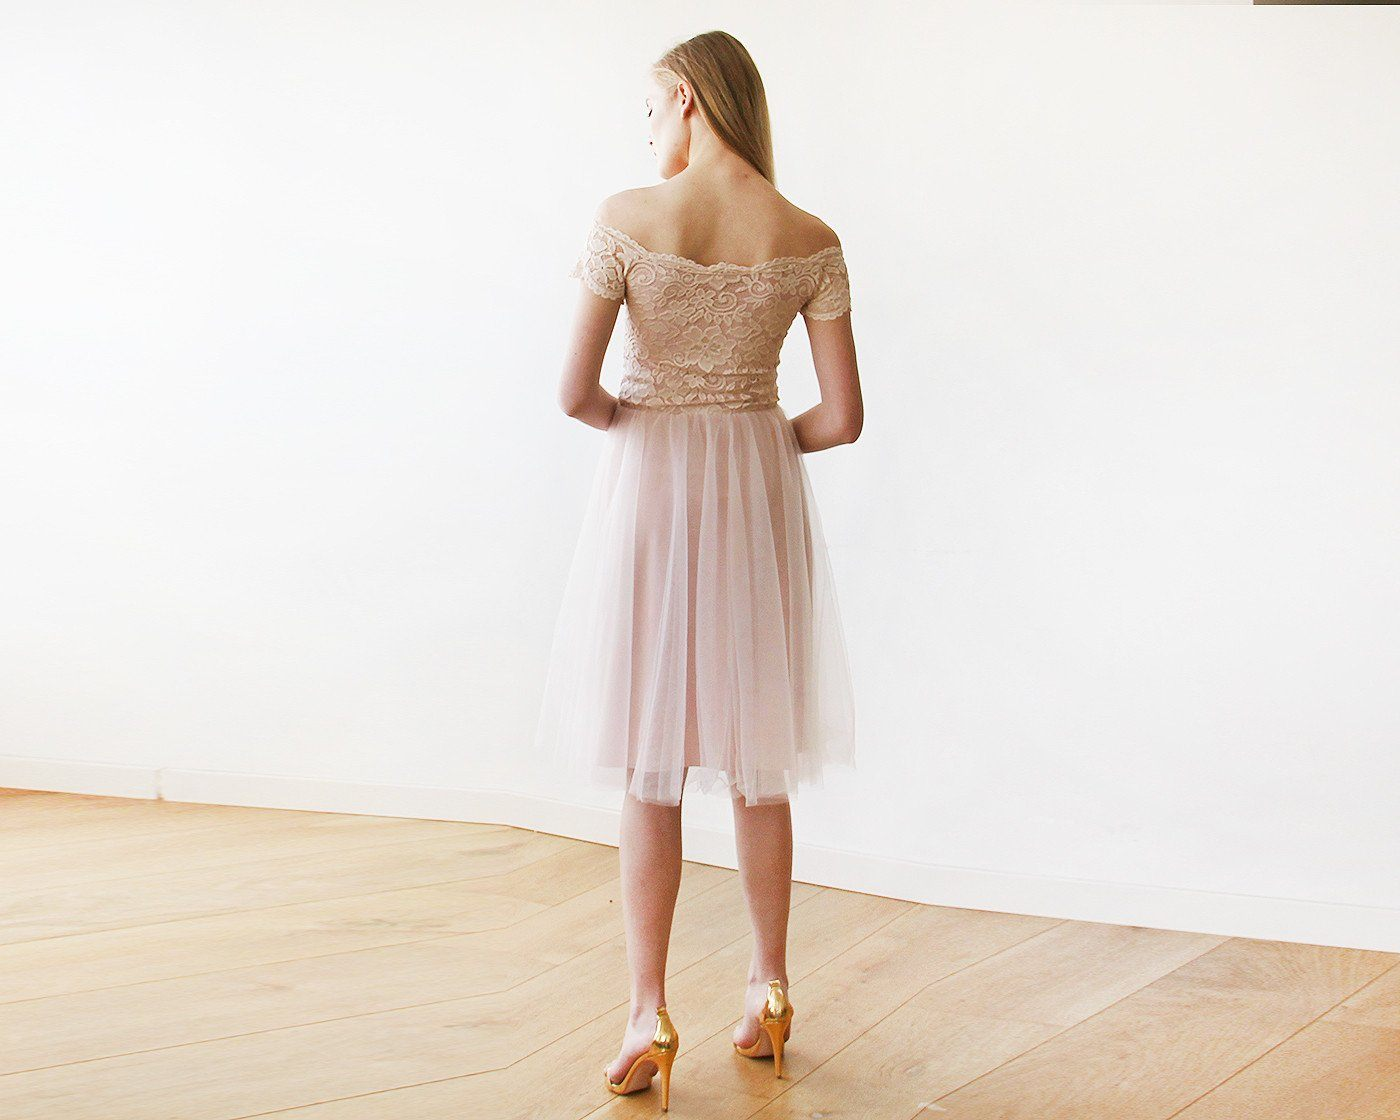 Off-the-Shoulders Blush Pink Tulle & Lace Midi Short Sleeves Dress 1153 - Blushfashion